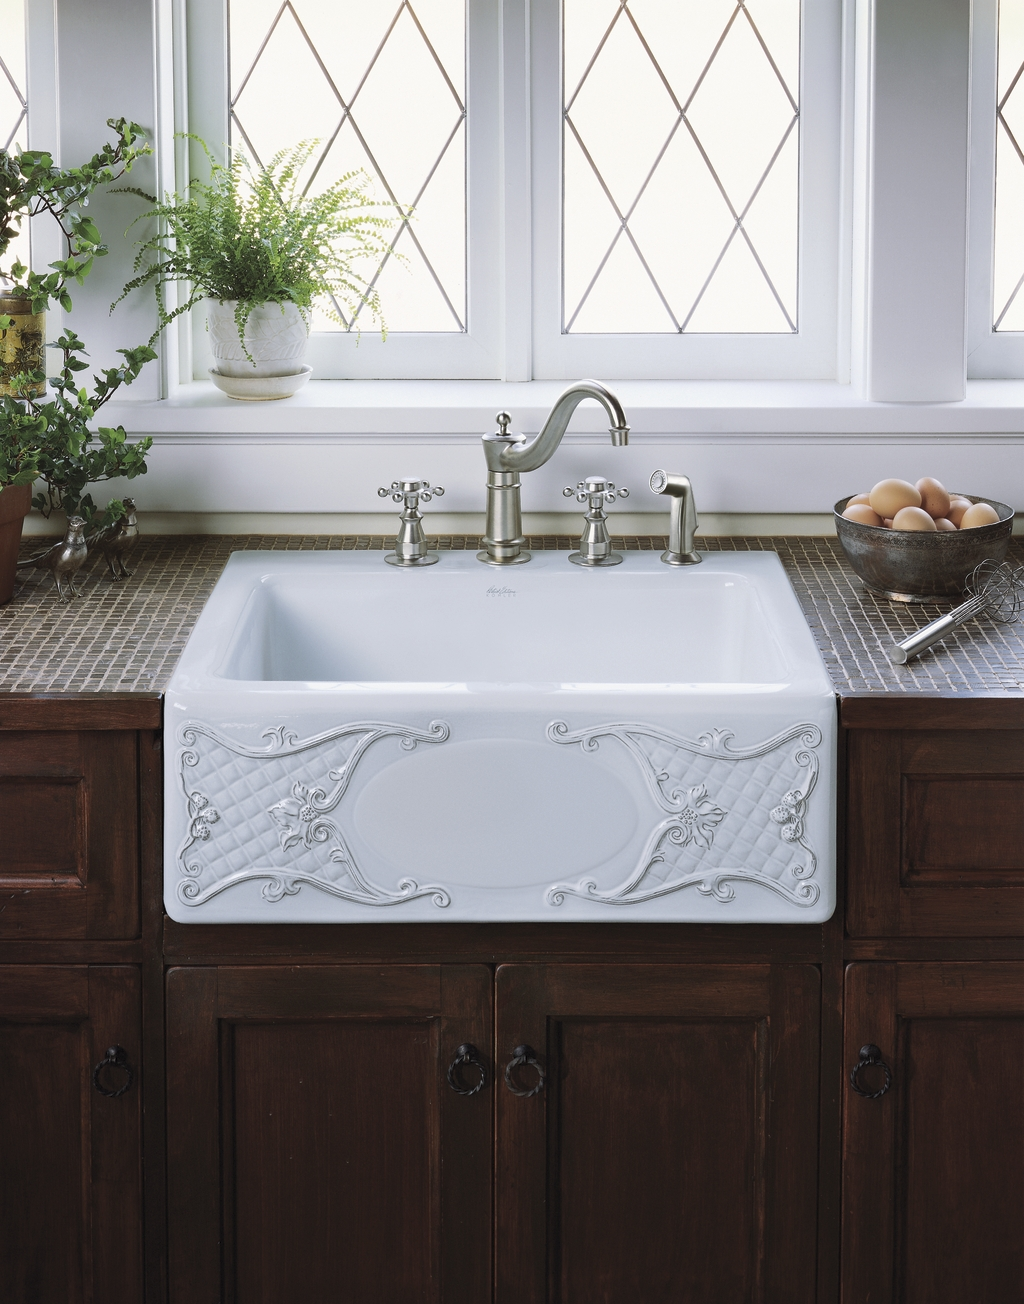 White Apron Kitchen Sink : and cast iron are still the most popular types of apron front sinks ...